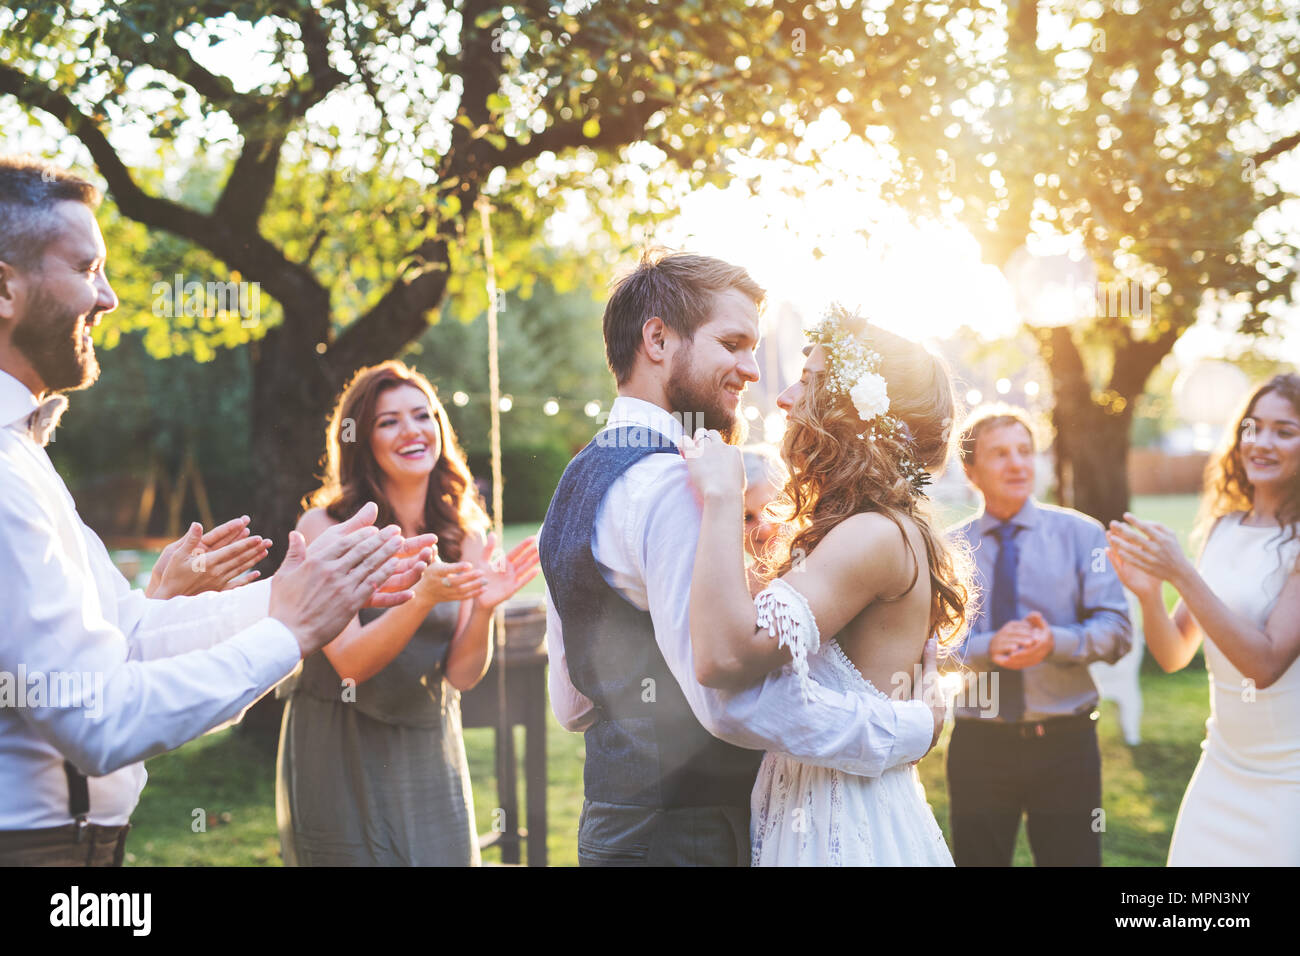 Bride and groom dancing at wedding reception outside in the backyard. - Stock Image